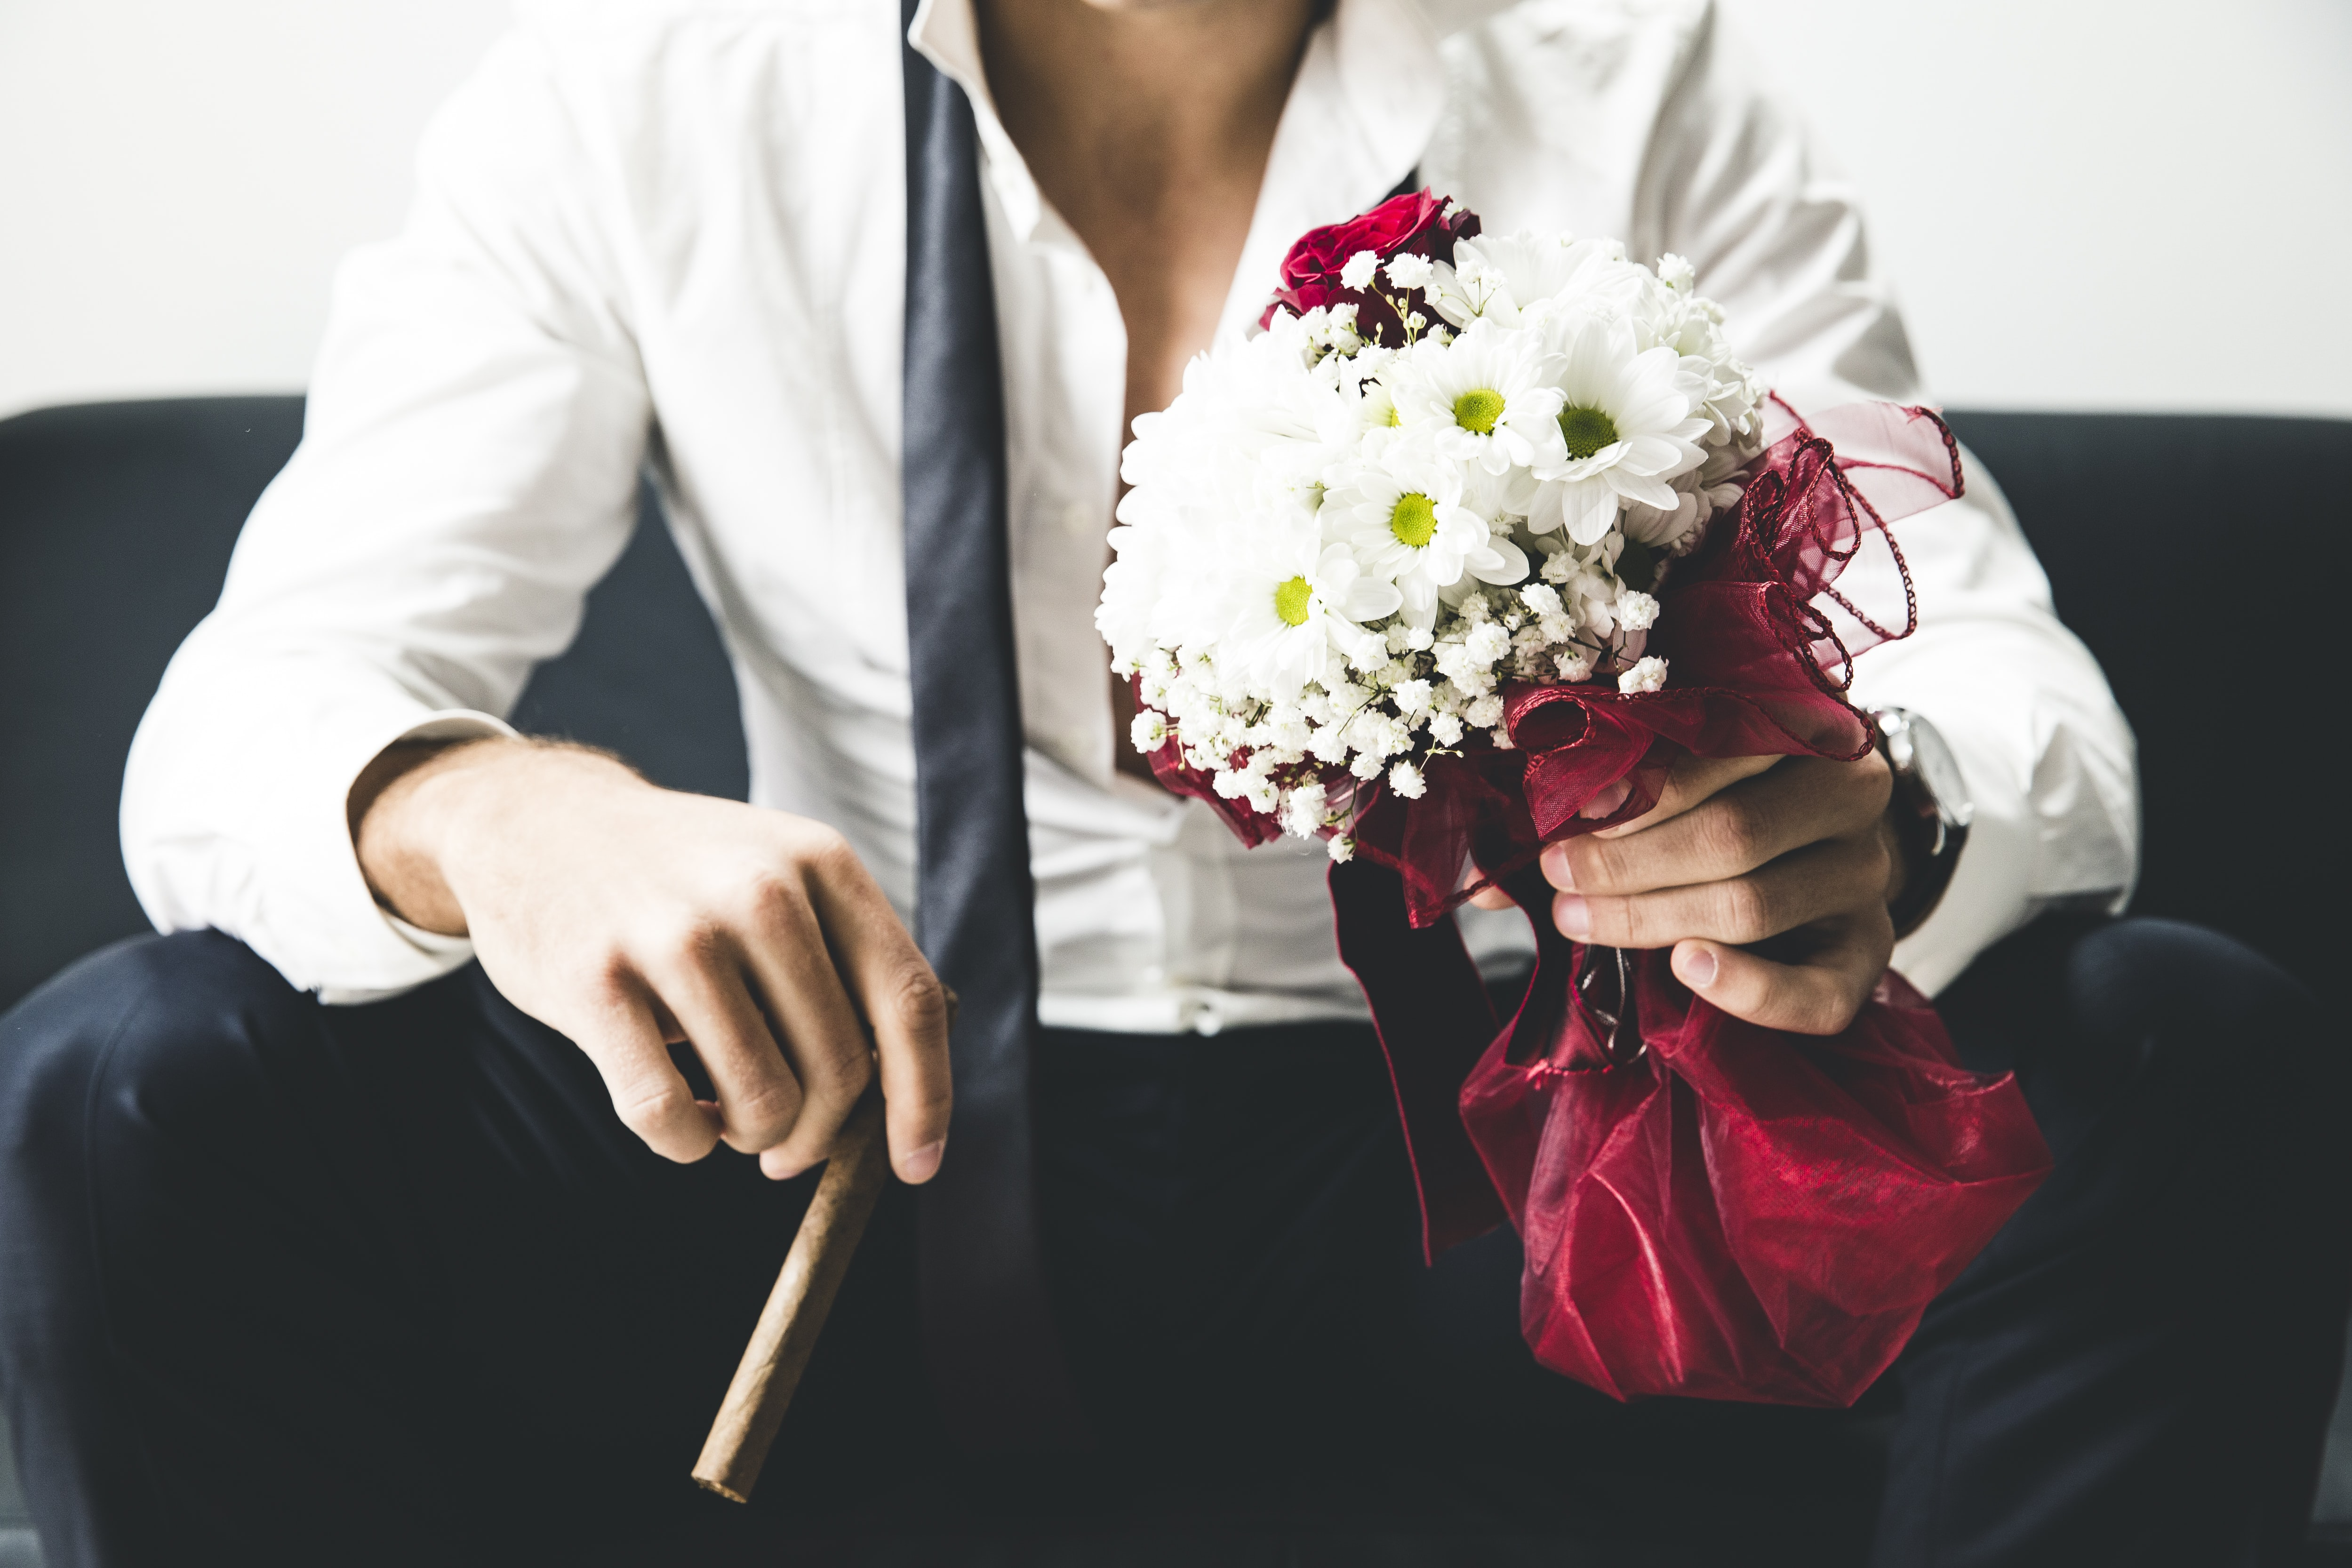 man holding bouquet of white flowers and brown tobacco